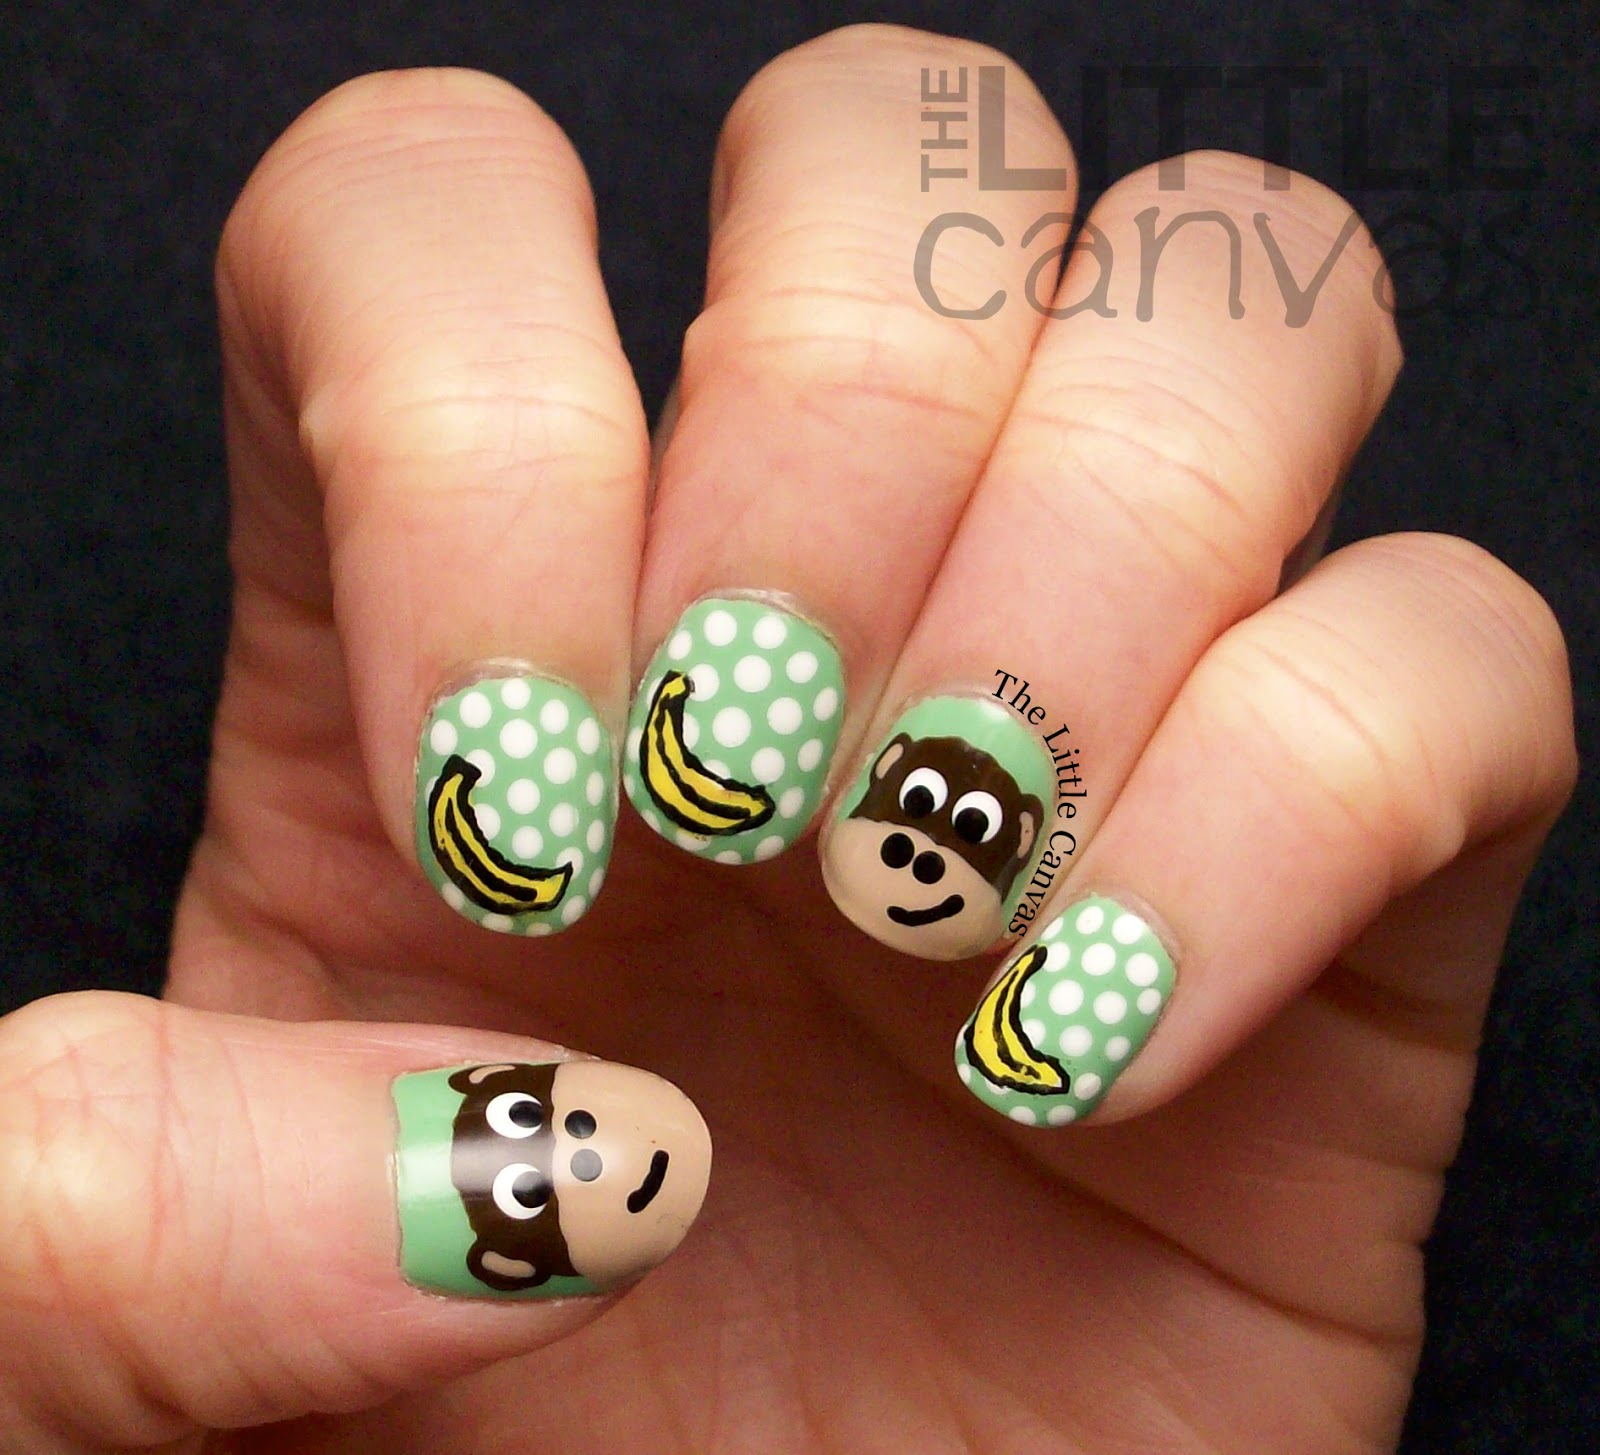 Little Google1 Nail Art: The Manicured Monkey: Guest Post: The Little Canvas